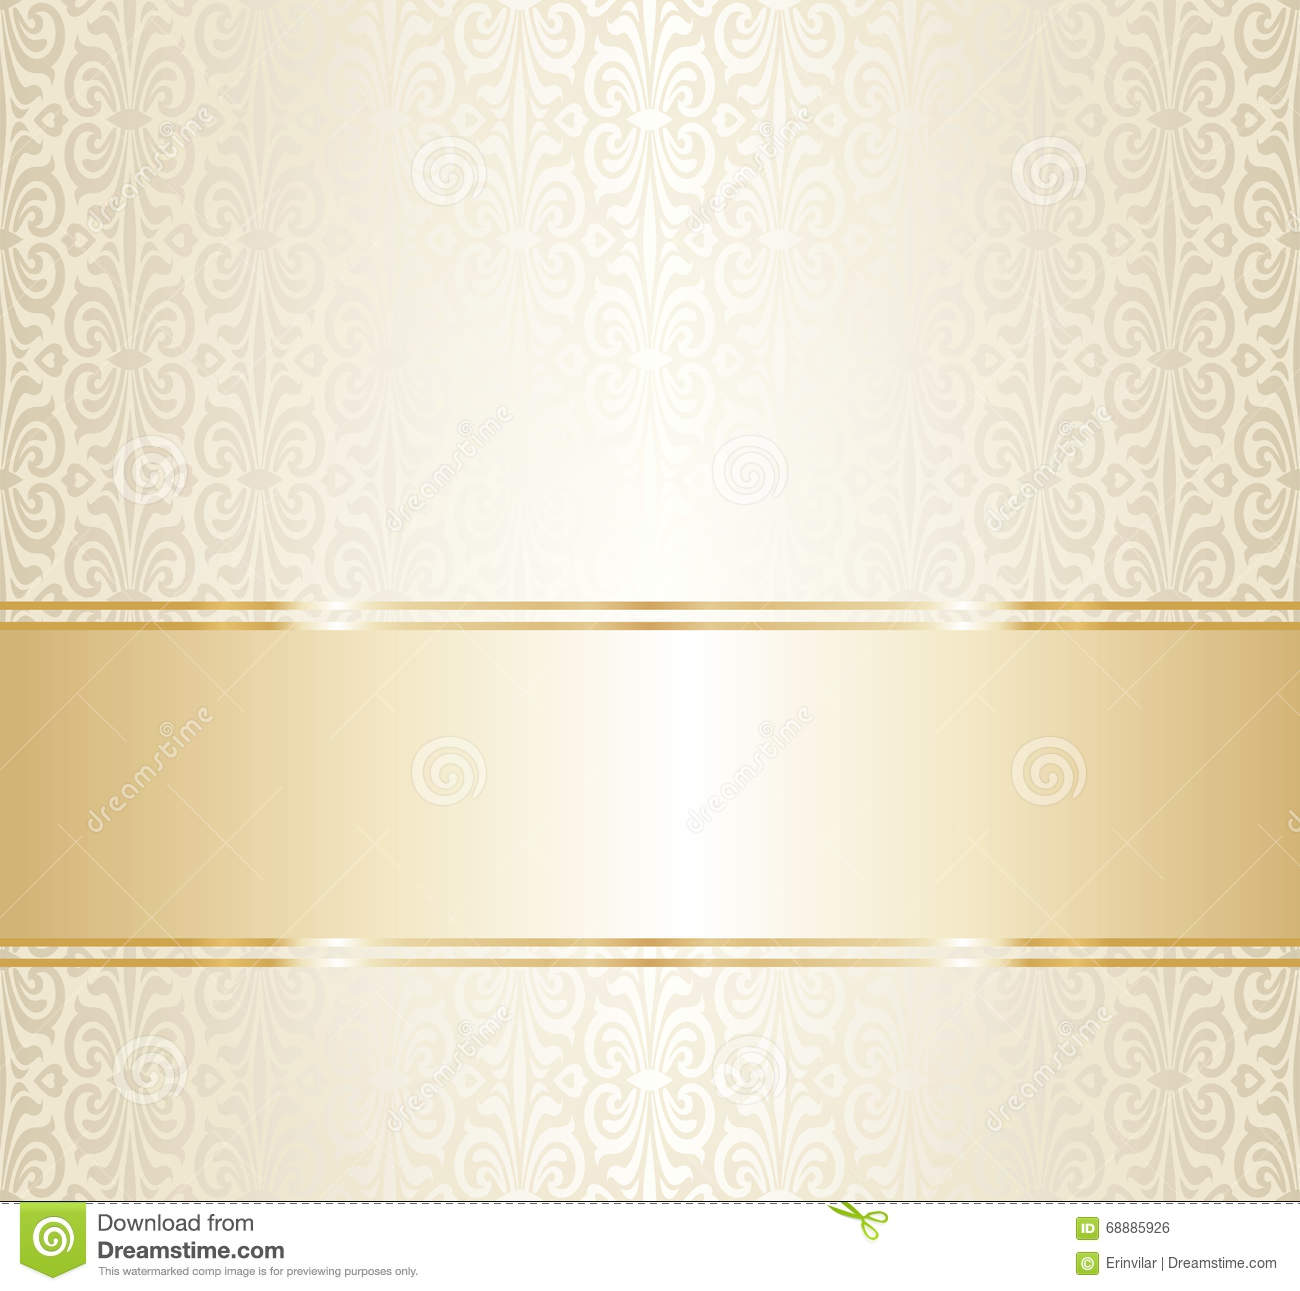 Wedding gold repetitive wallpaper design blank space for text